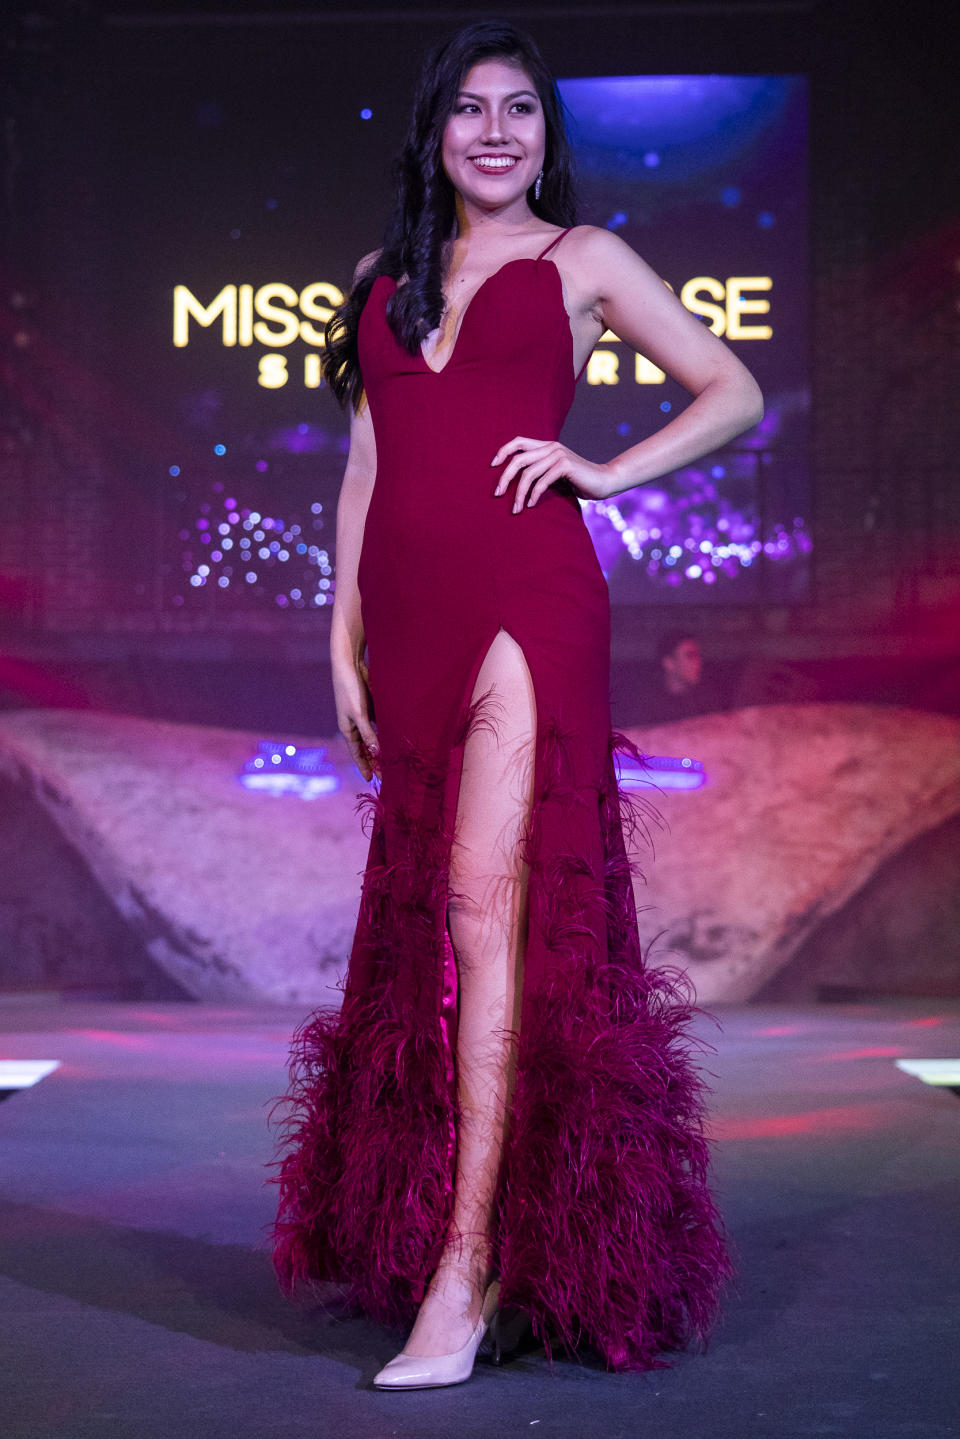 Lynette Chua competing in the evening gown segment during the 2019 Miss Universe Singapore at Zouk.